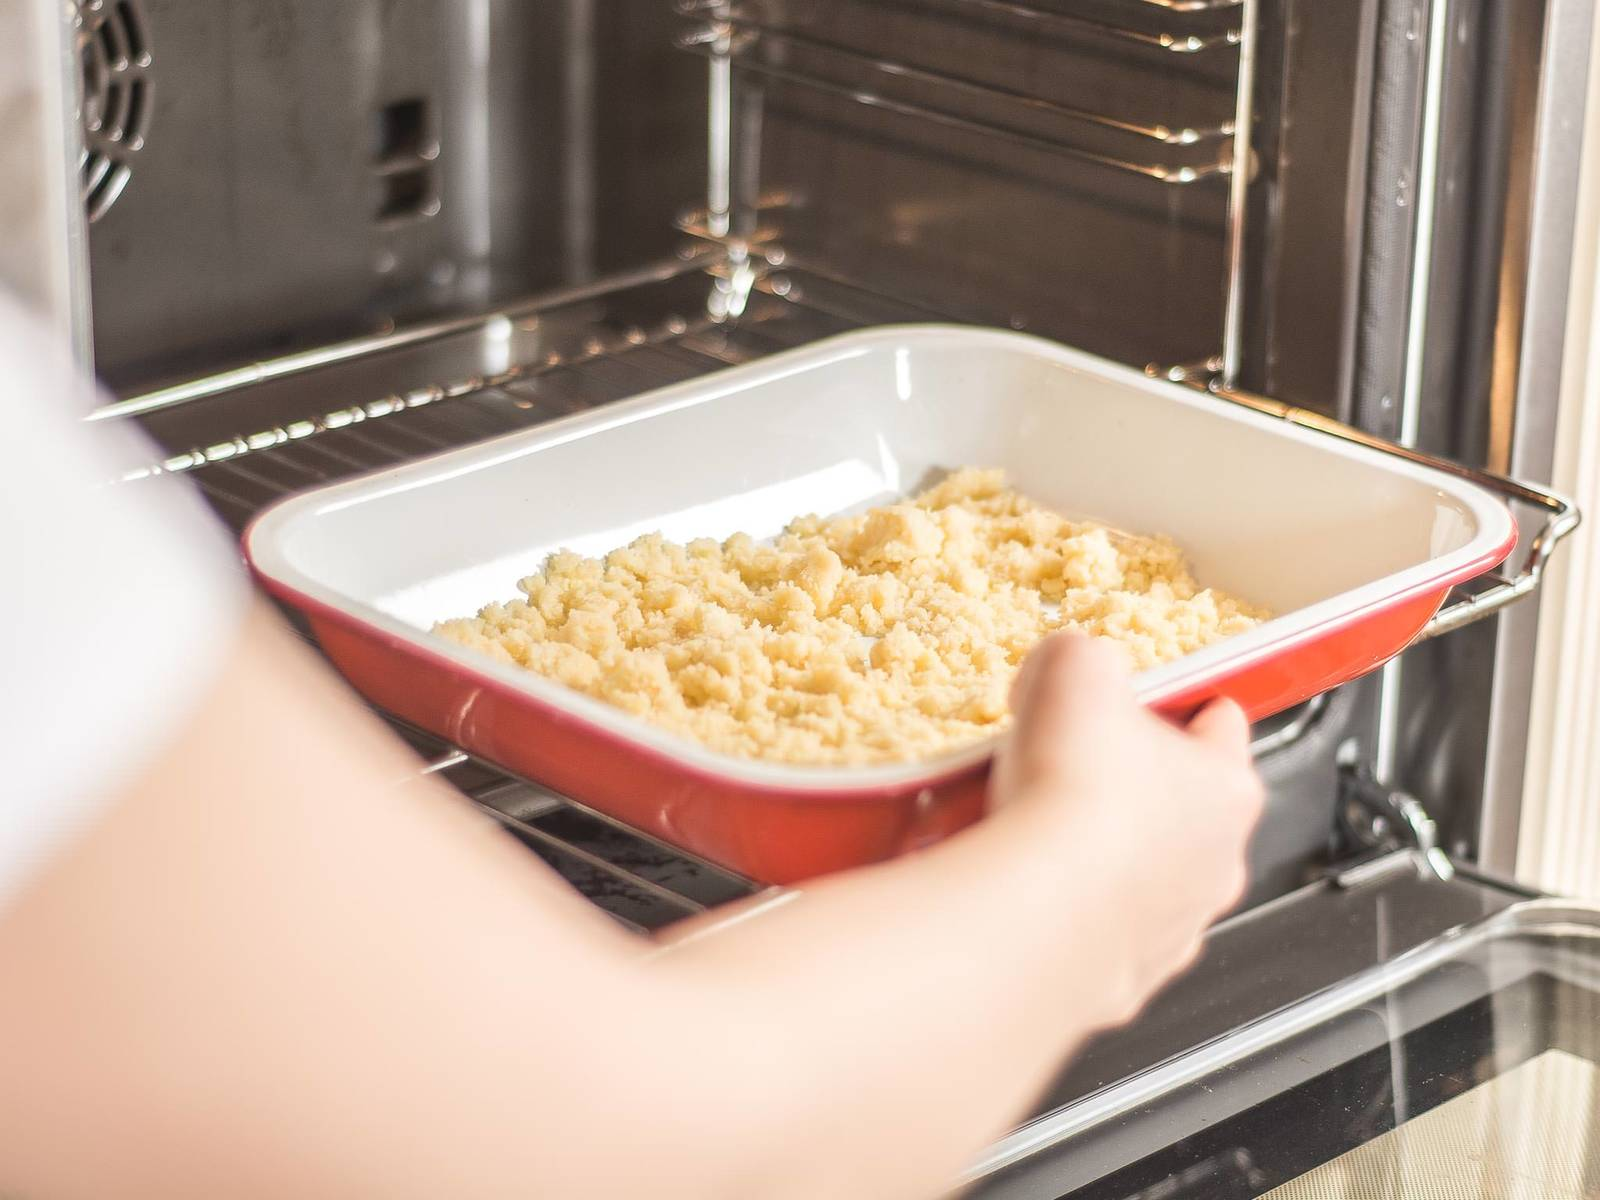 Put buttery crumbles into a baking dish or on a baking tray with baking paper. Bake in a preheated oven at 160°C/ 320°F for approx. 8 - 10 min. until crispy and golden.